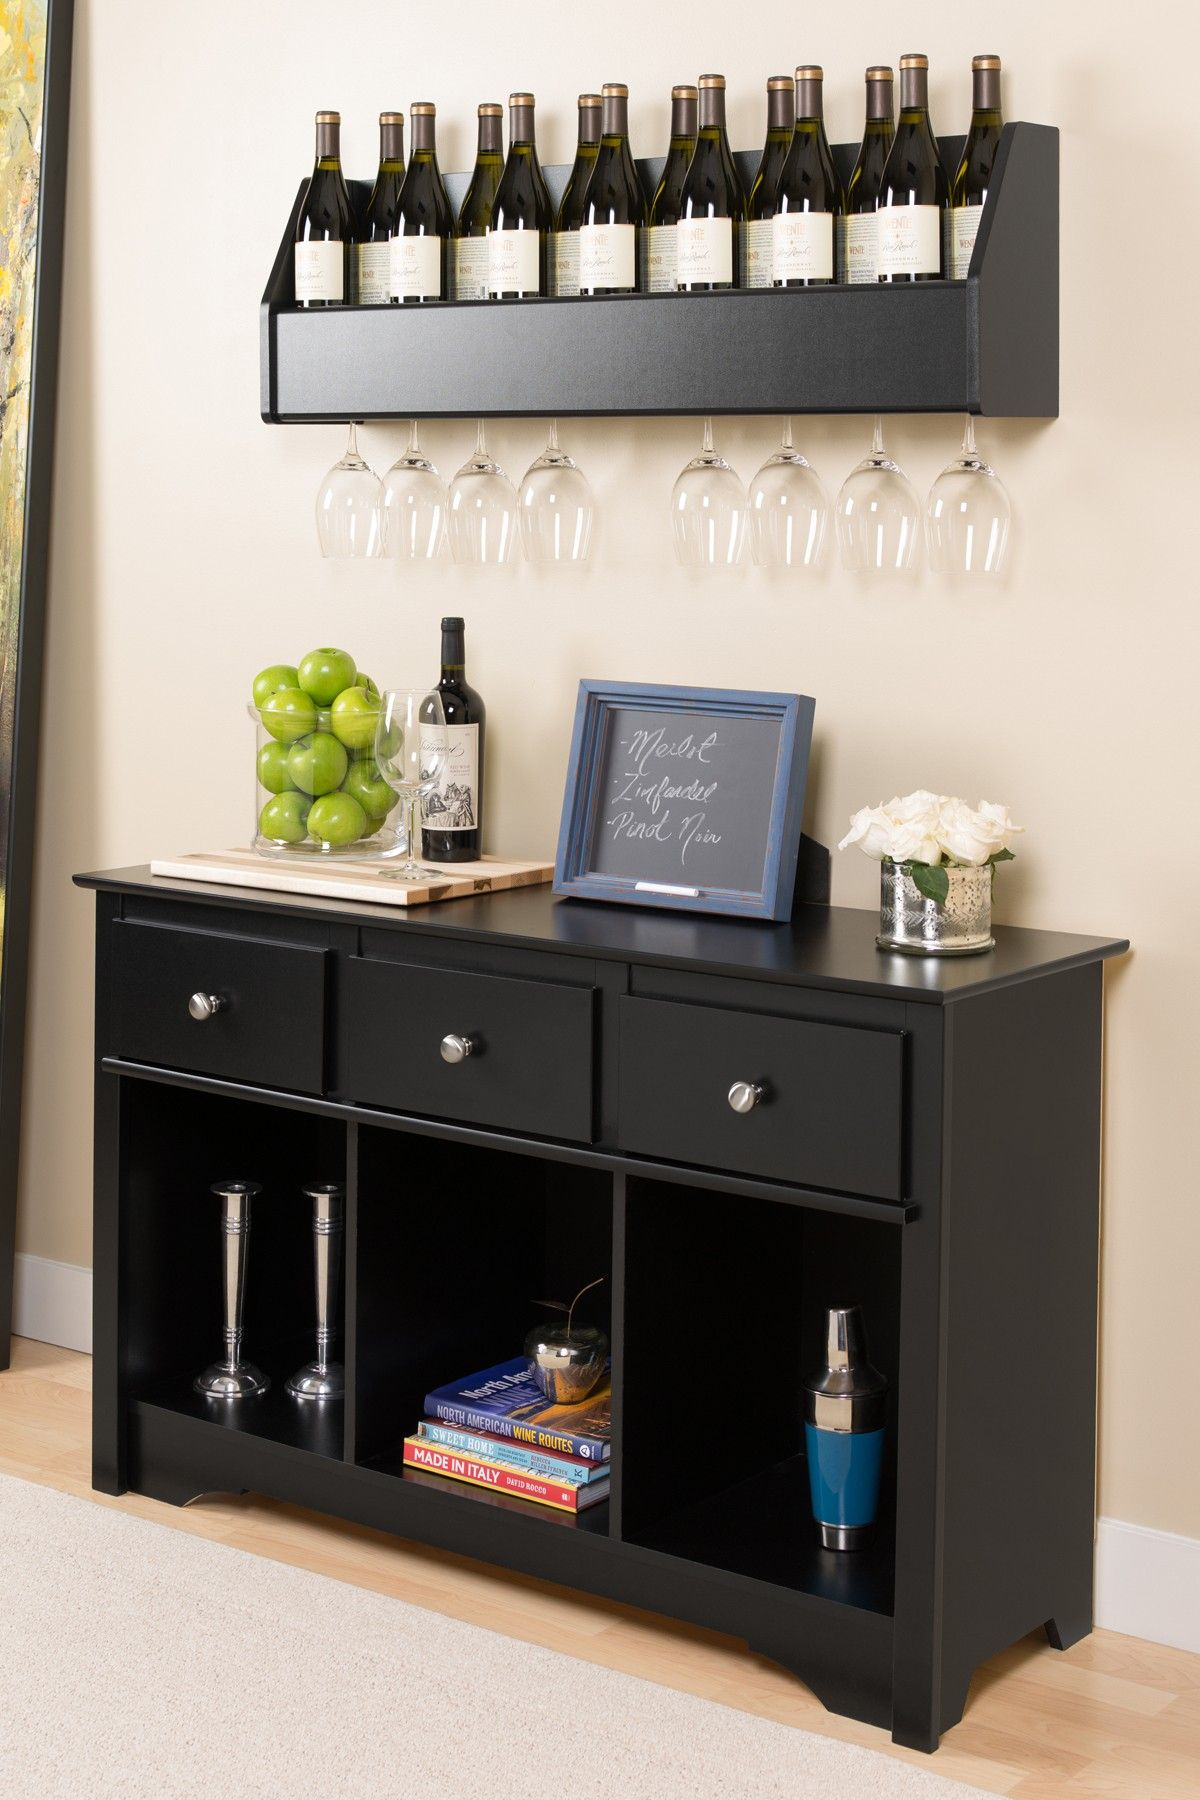 Mini Angolo Bar Great For Small Spaces Apartment If In Need Of A Mini Bar Buffet